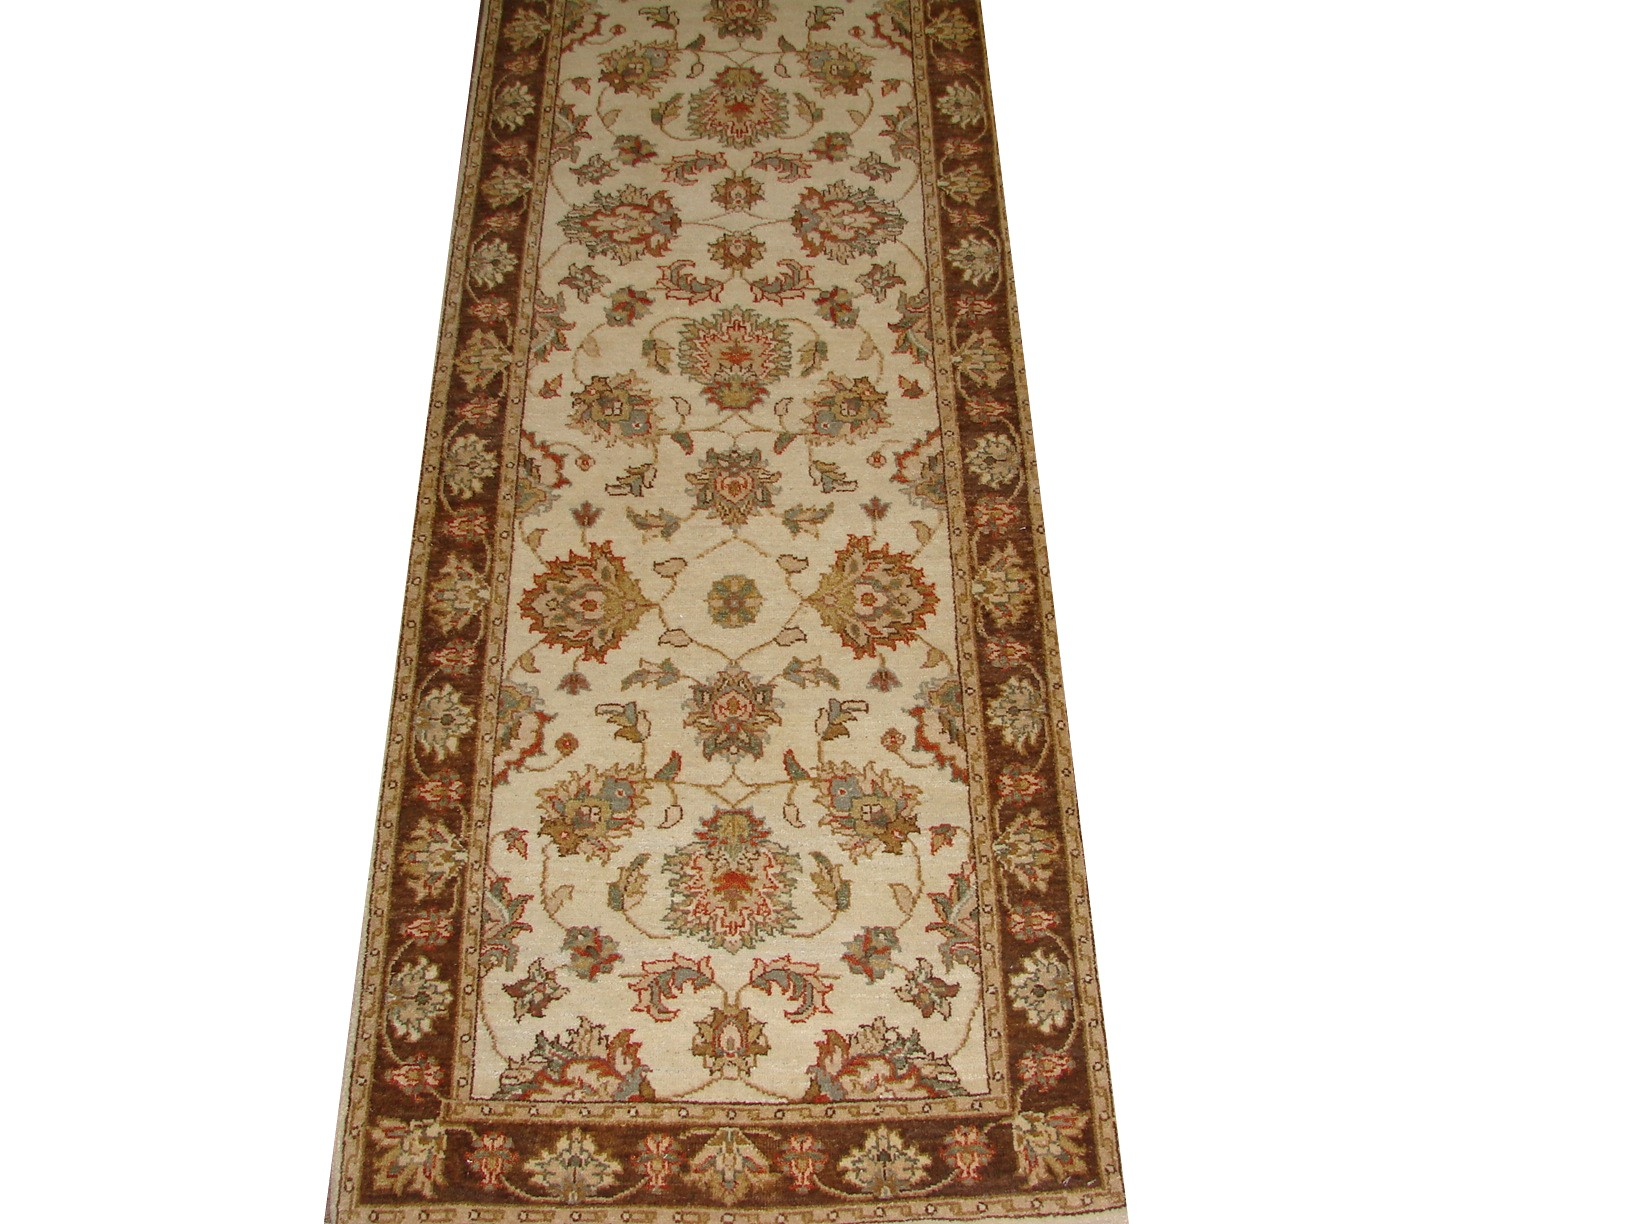 12 ft. Runner Traditional Hand Knotted Wool Area Rug - MR16658